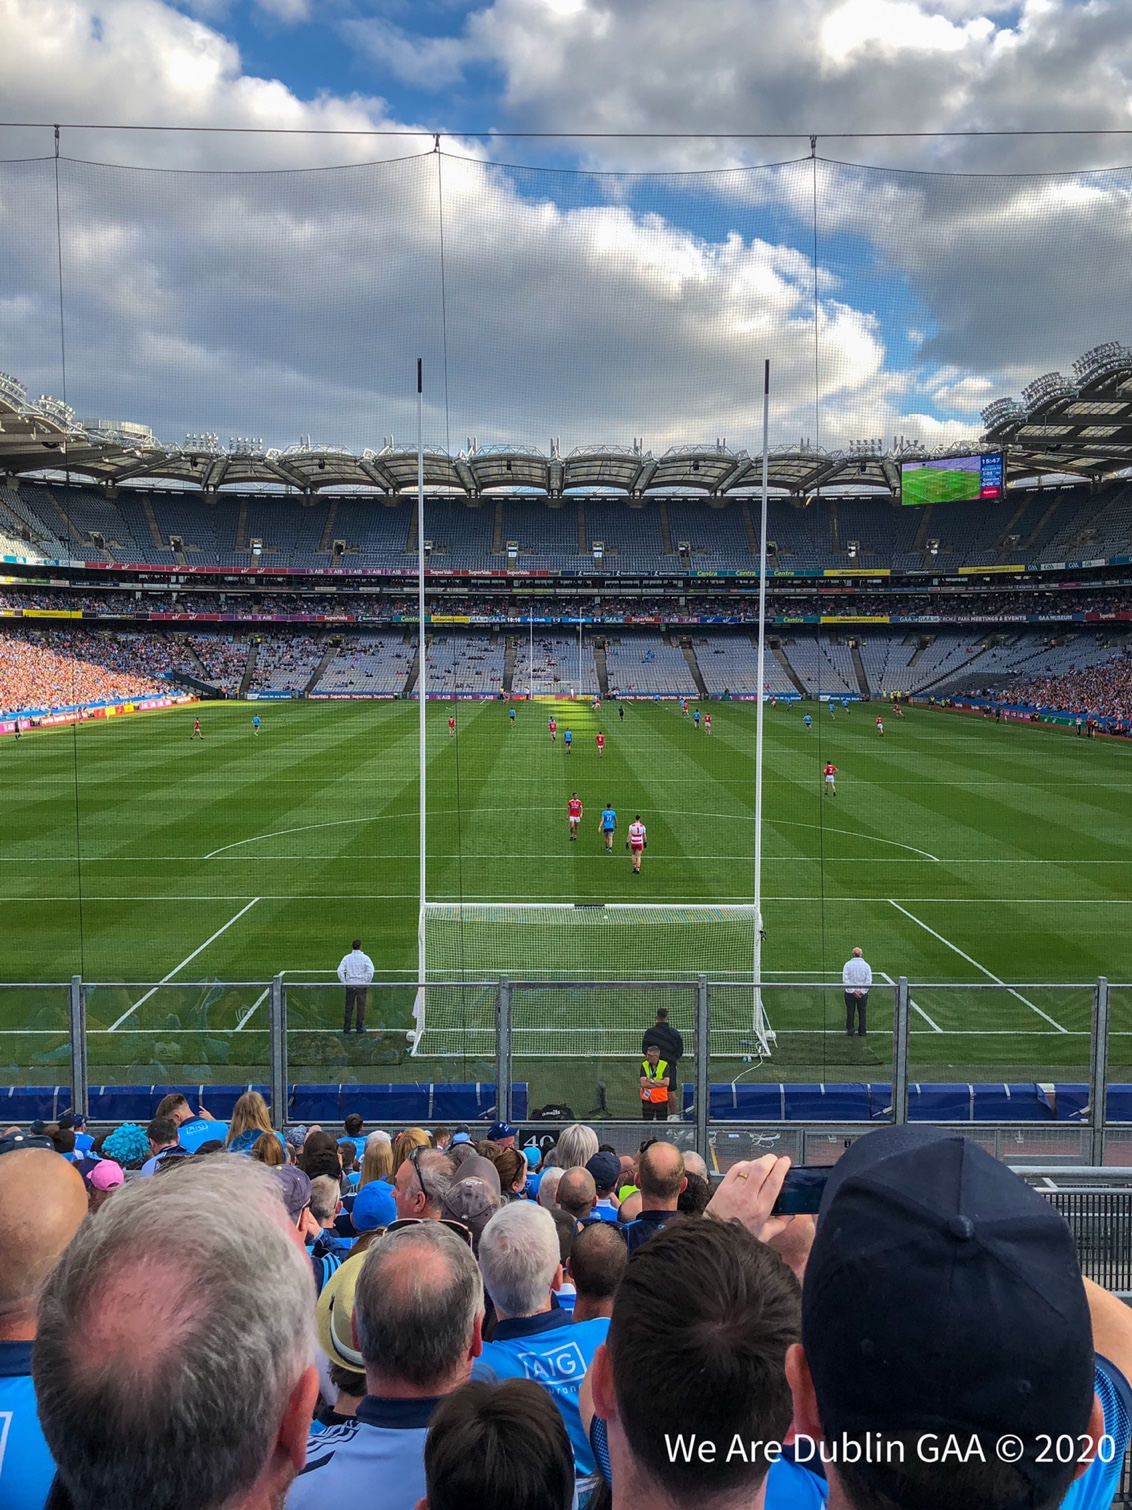 Supporters look on from the Hill 16 terrace, the GAA might install temporary seats on the Hill 16 terrace to allow supporters attend games later in the summer.